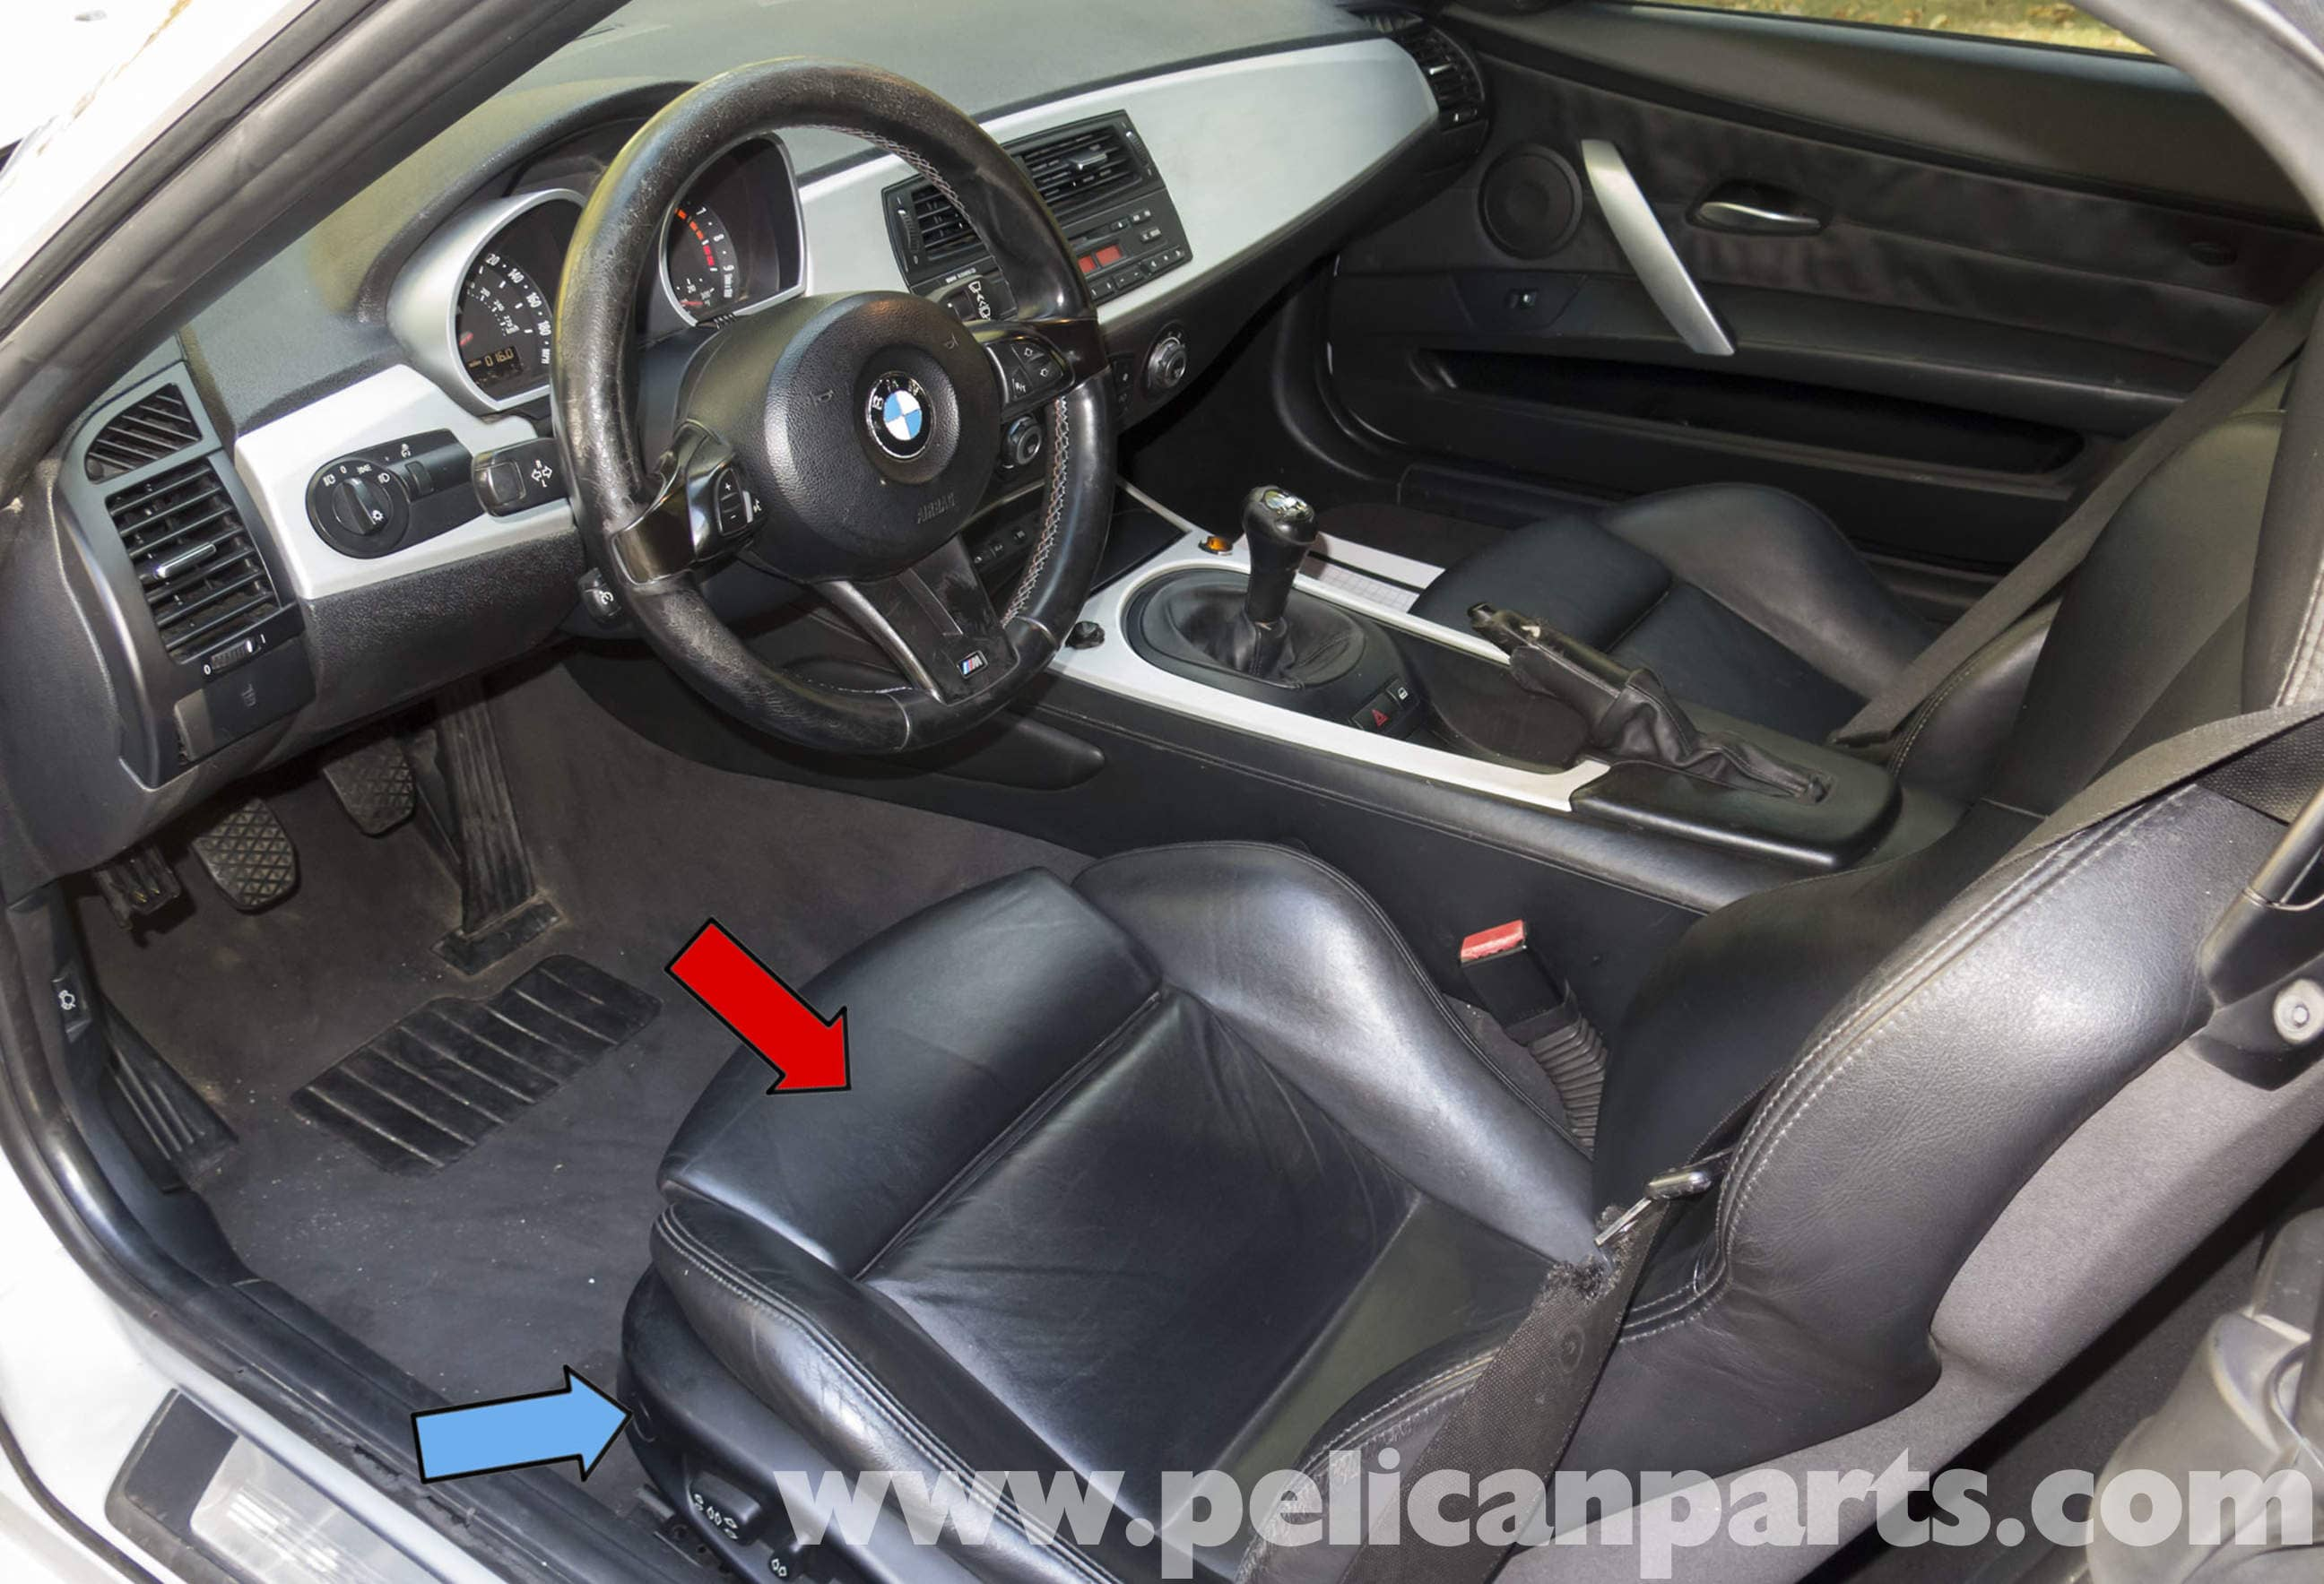 bmw z4 m seat removal 2003 2006 pelican parts diy maintenance on Matte Black BMW Z4 2005 for bmw z4 seat wiring #2 at 2014 Z4 Interior